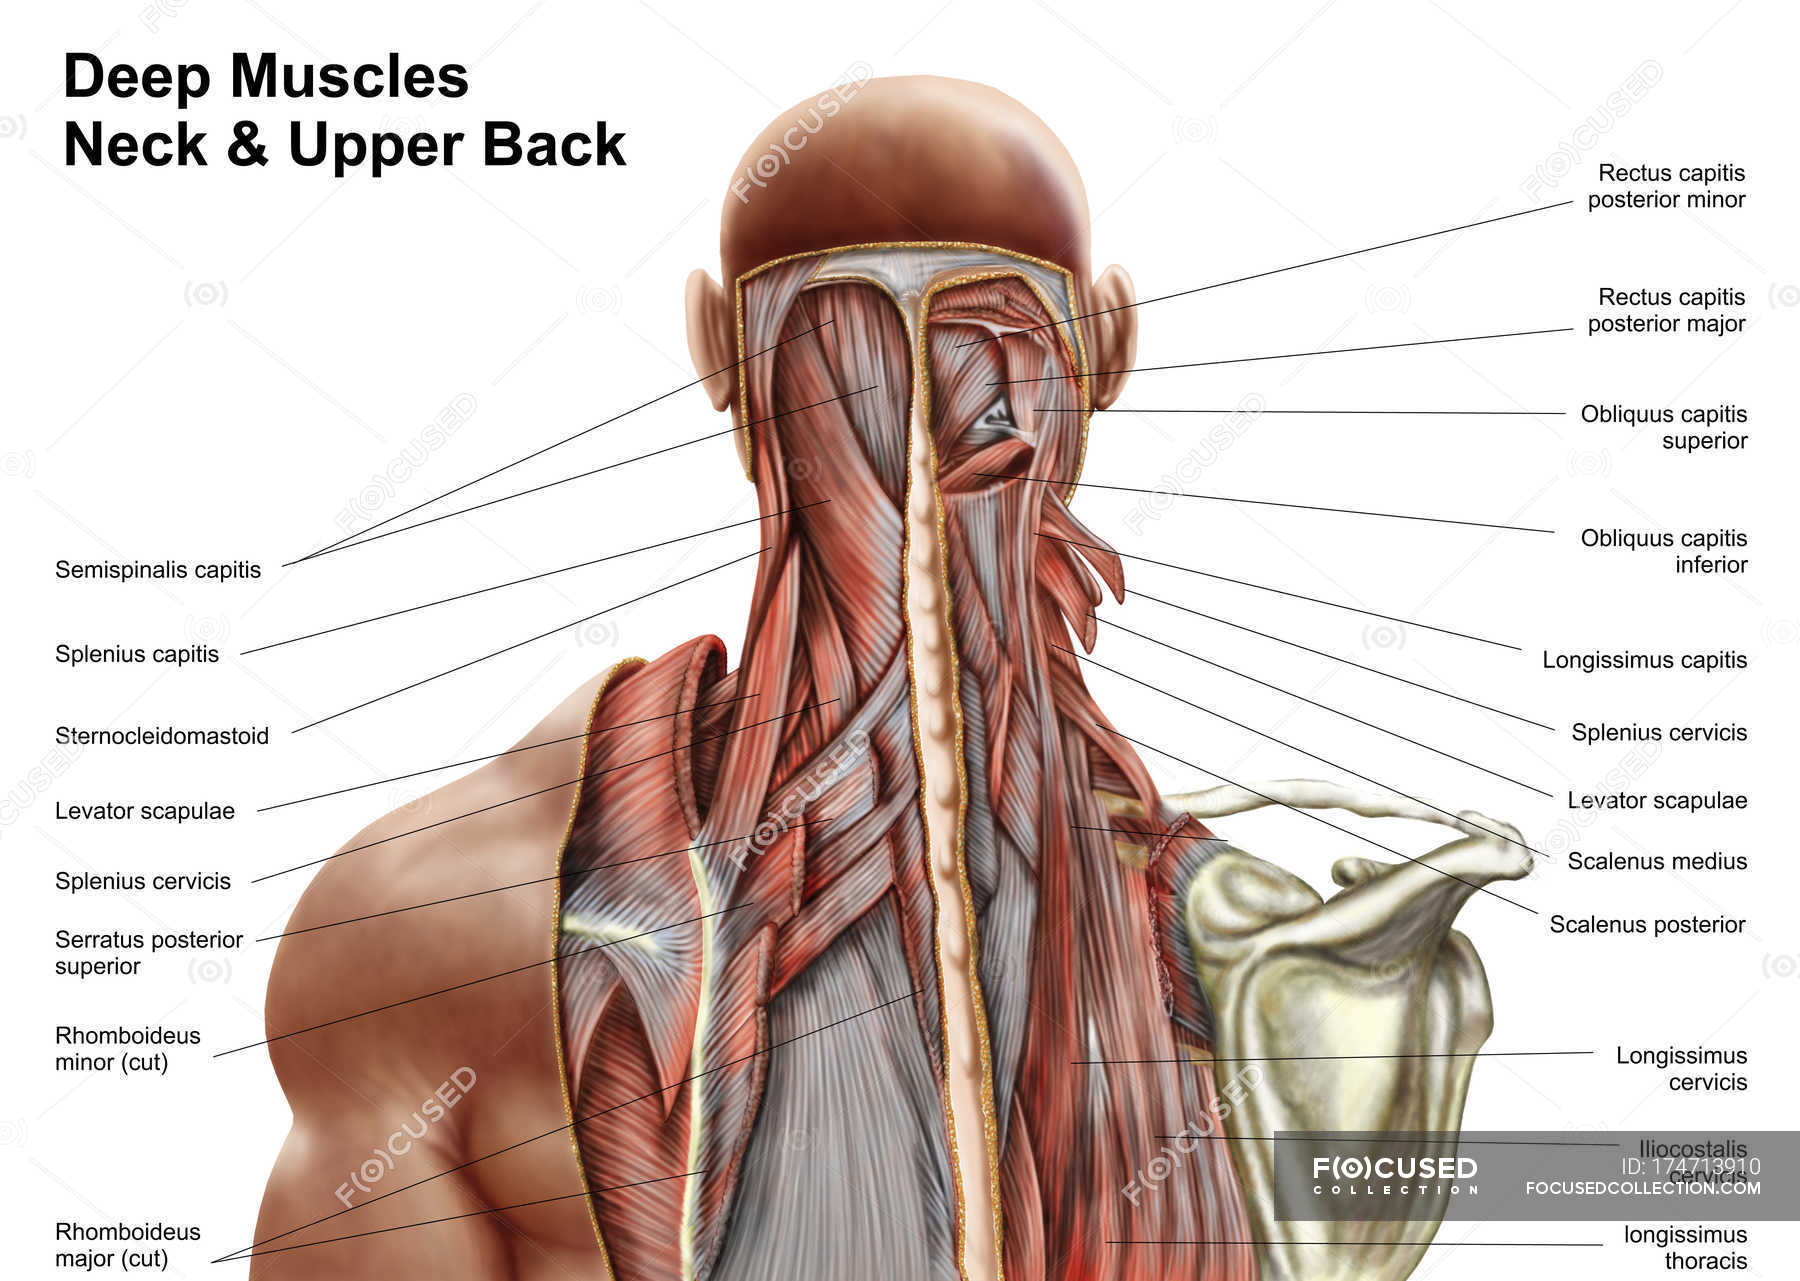 Human Anatomy Of Deep Muscles In The Neck And Upper Back White